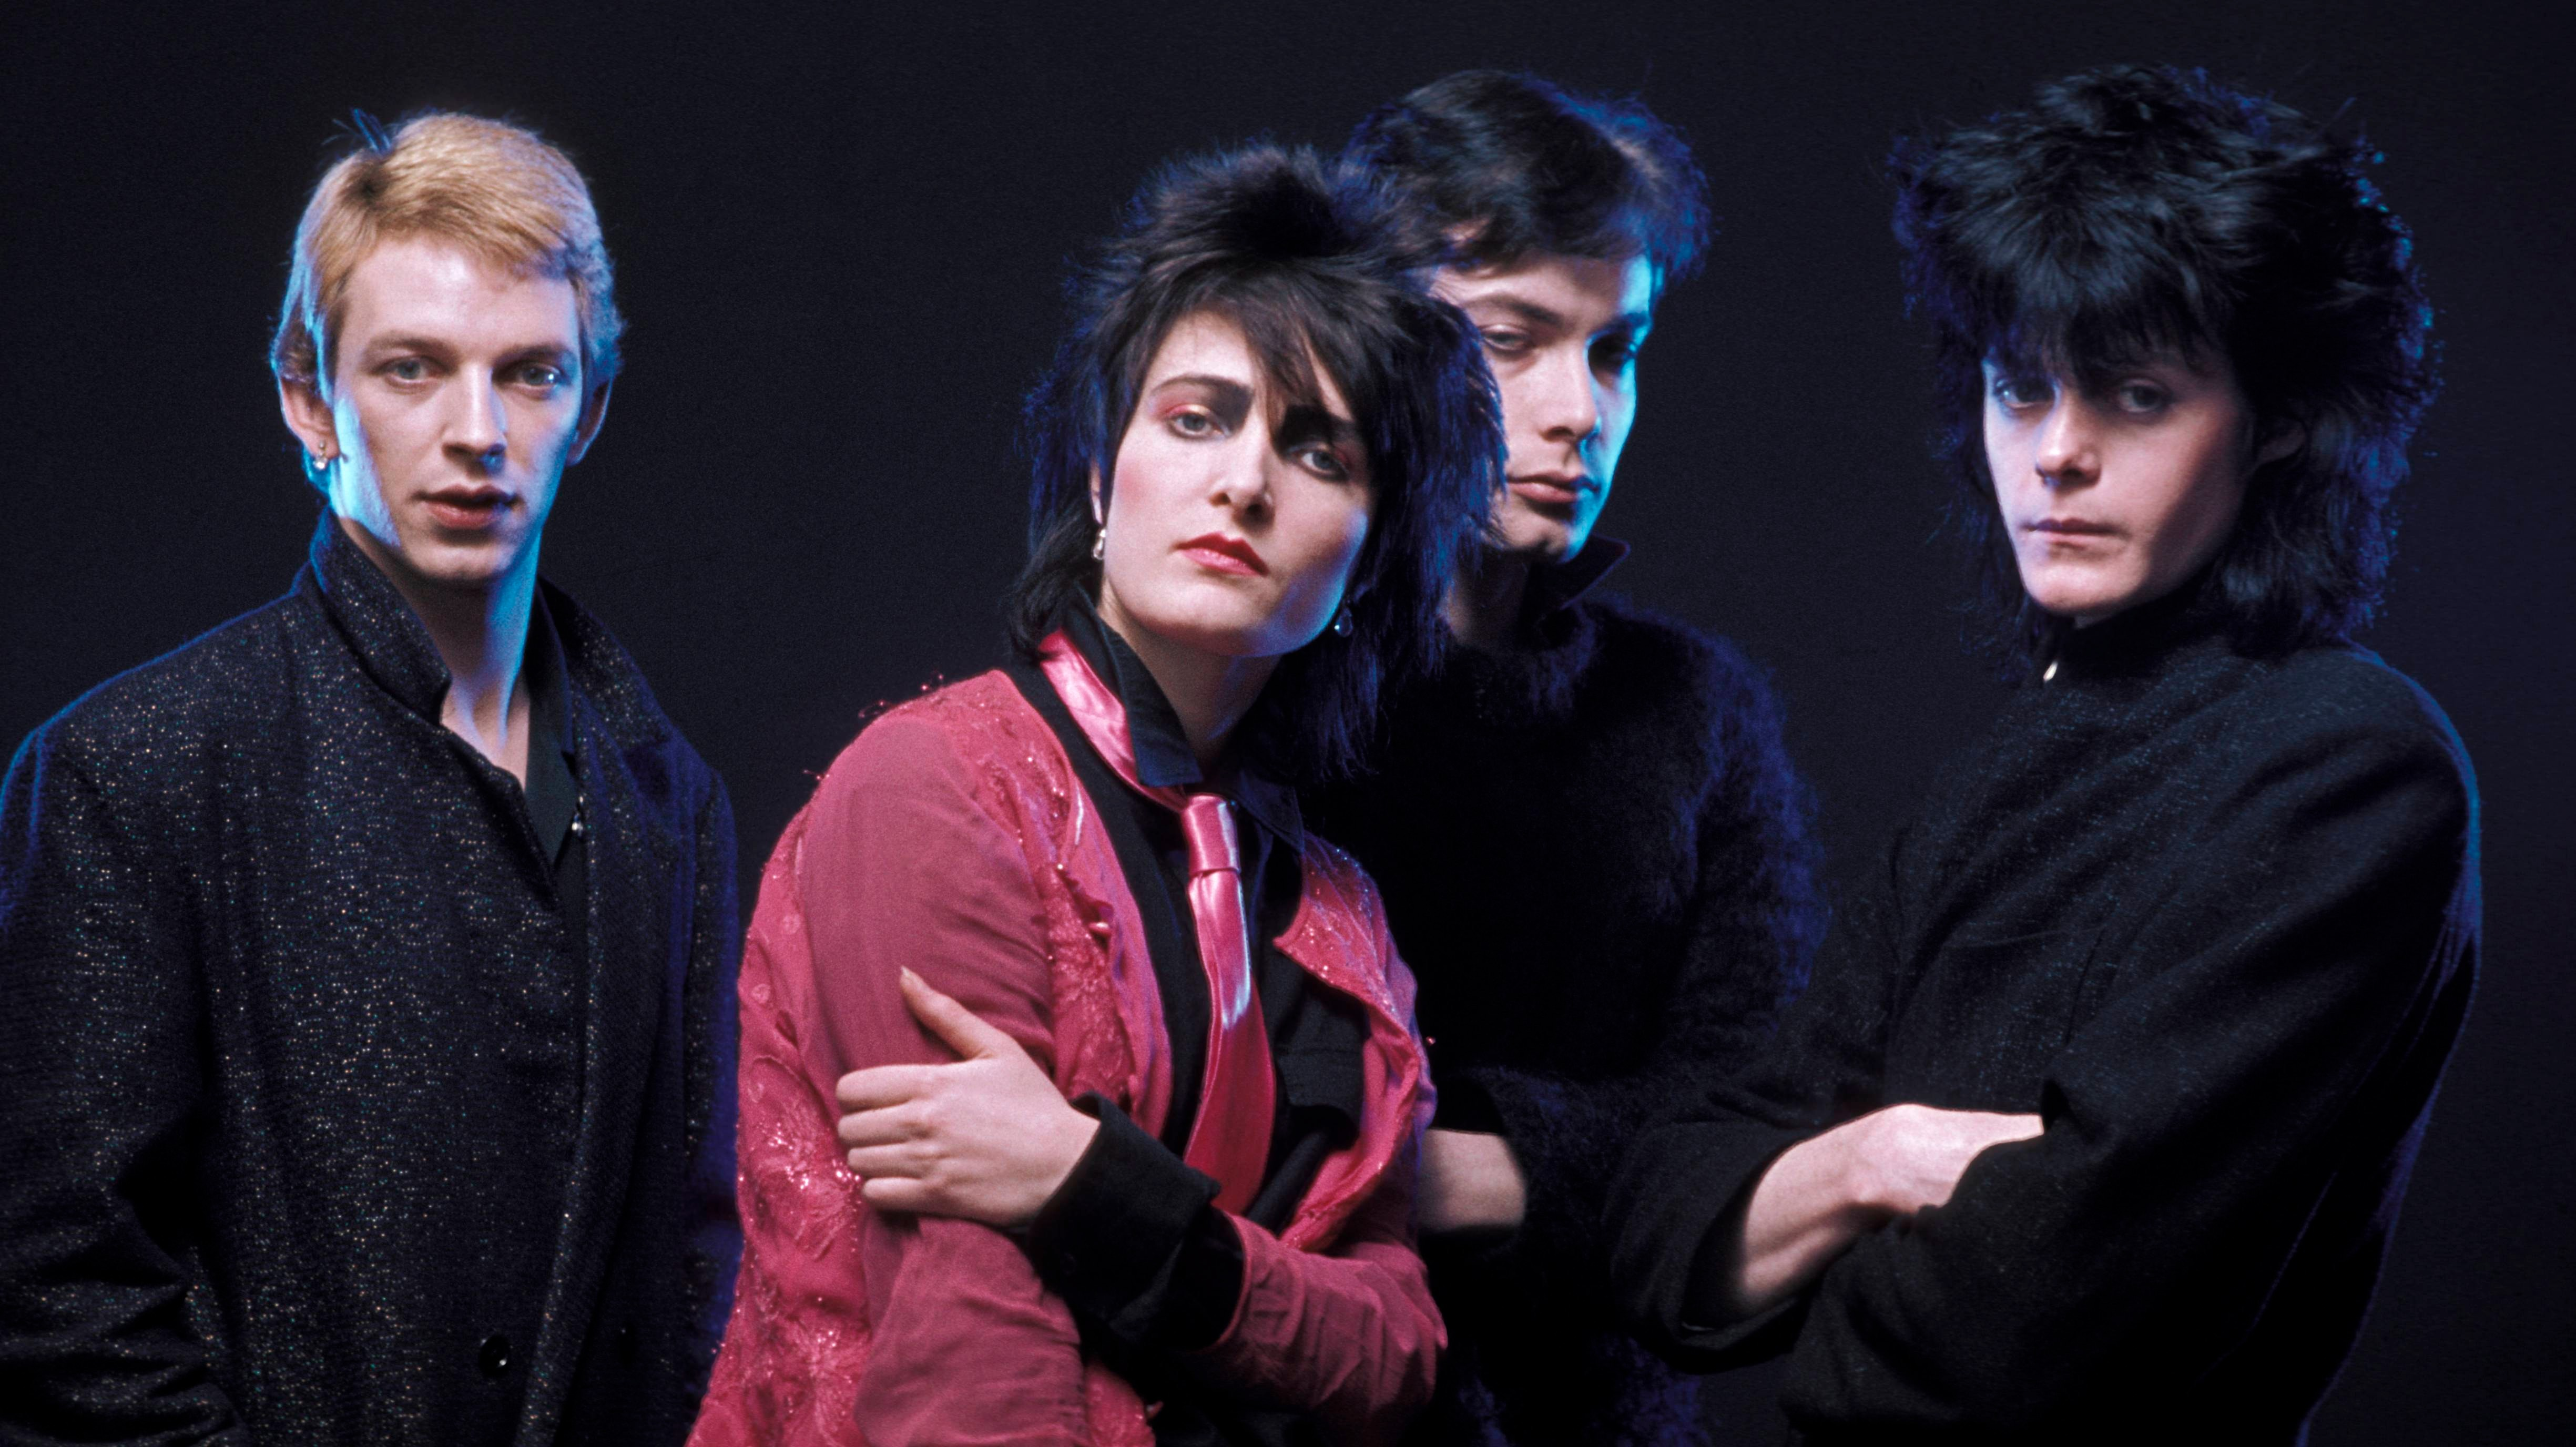 The Guide To Getting Into Siouxsie And The Banshees, Dark Pop Outsiders